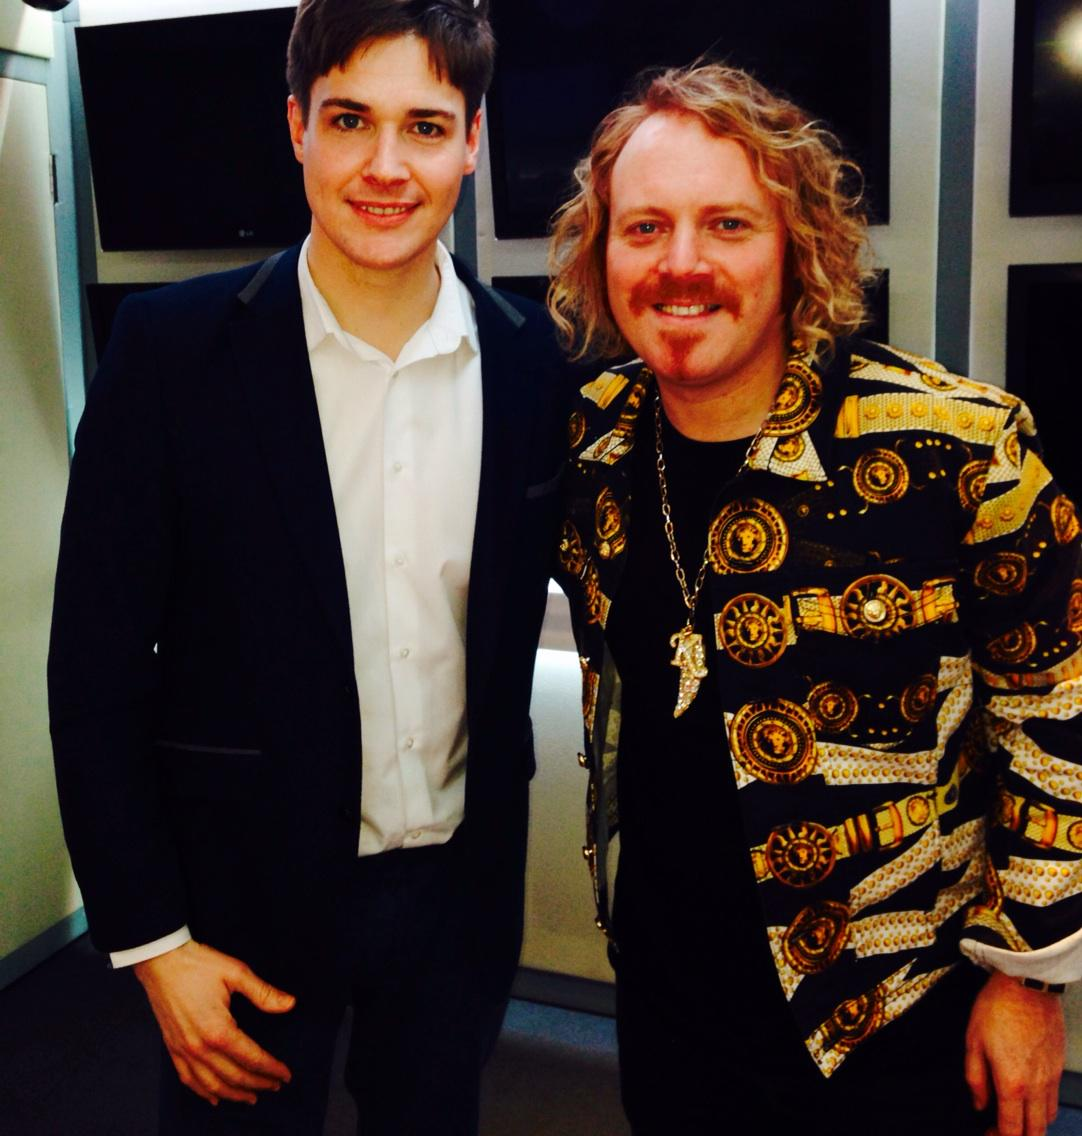 RT @Popprince: Can't wait to see his new ITV2 sketch show, later tonight. Always good to talk to @lemontwittor #keithlemon http://t.co/mF25…